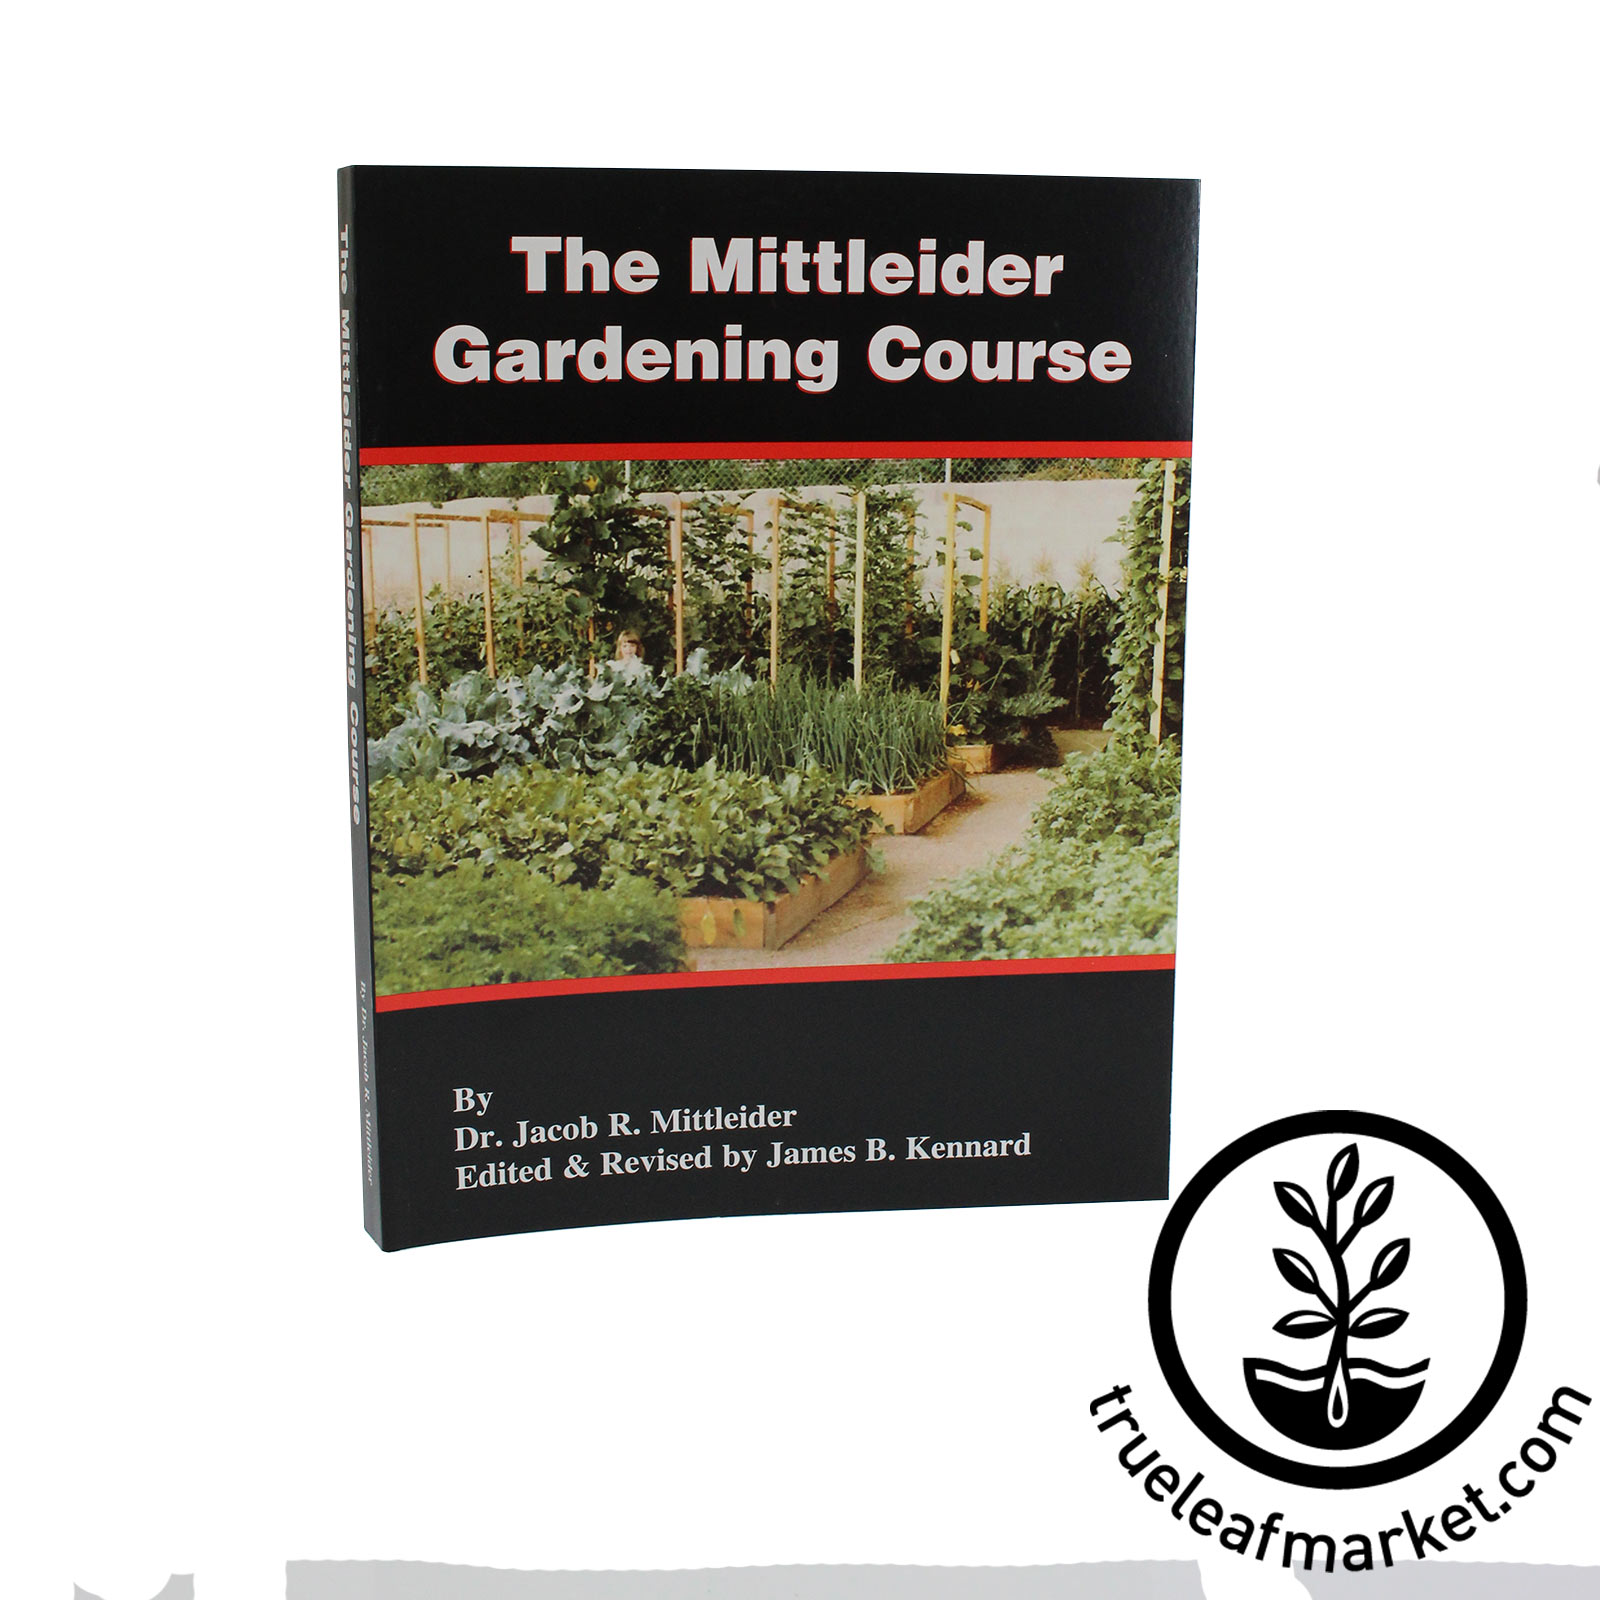 Book: The Mittleider Gardening Course